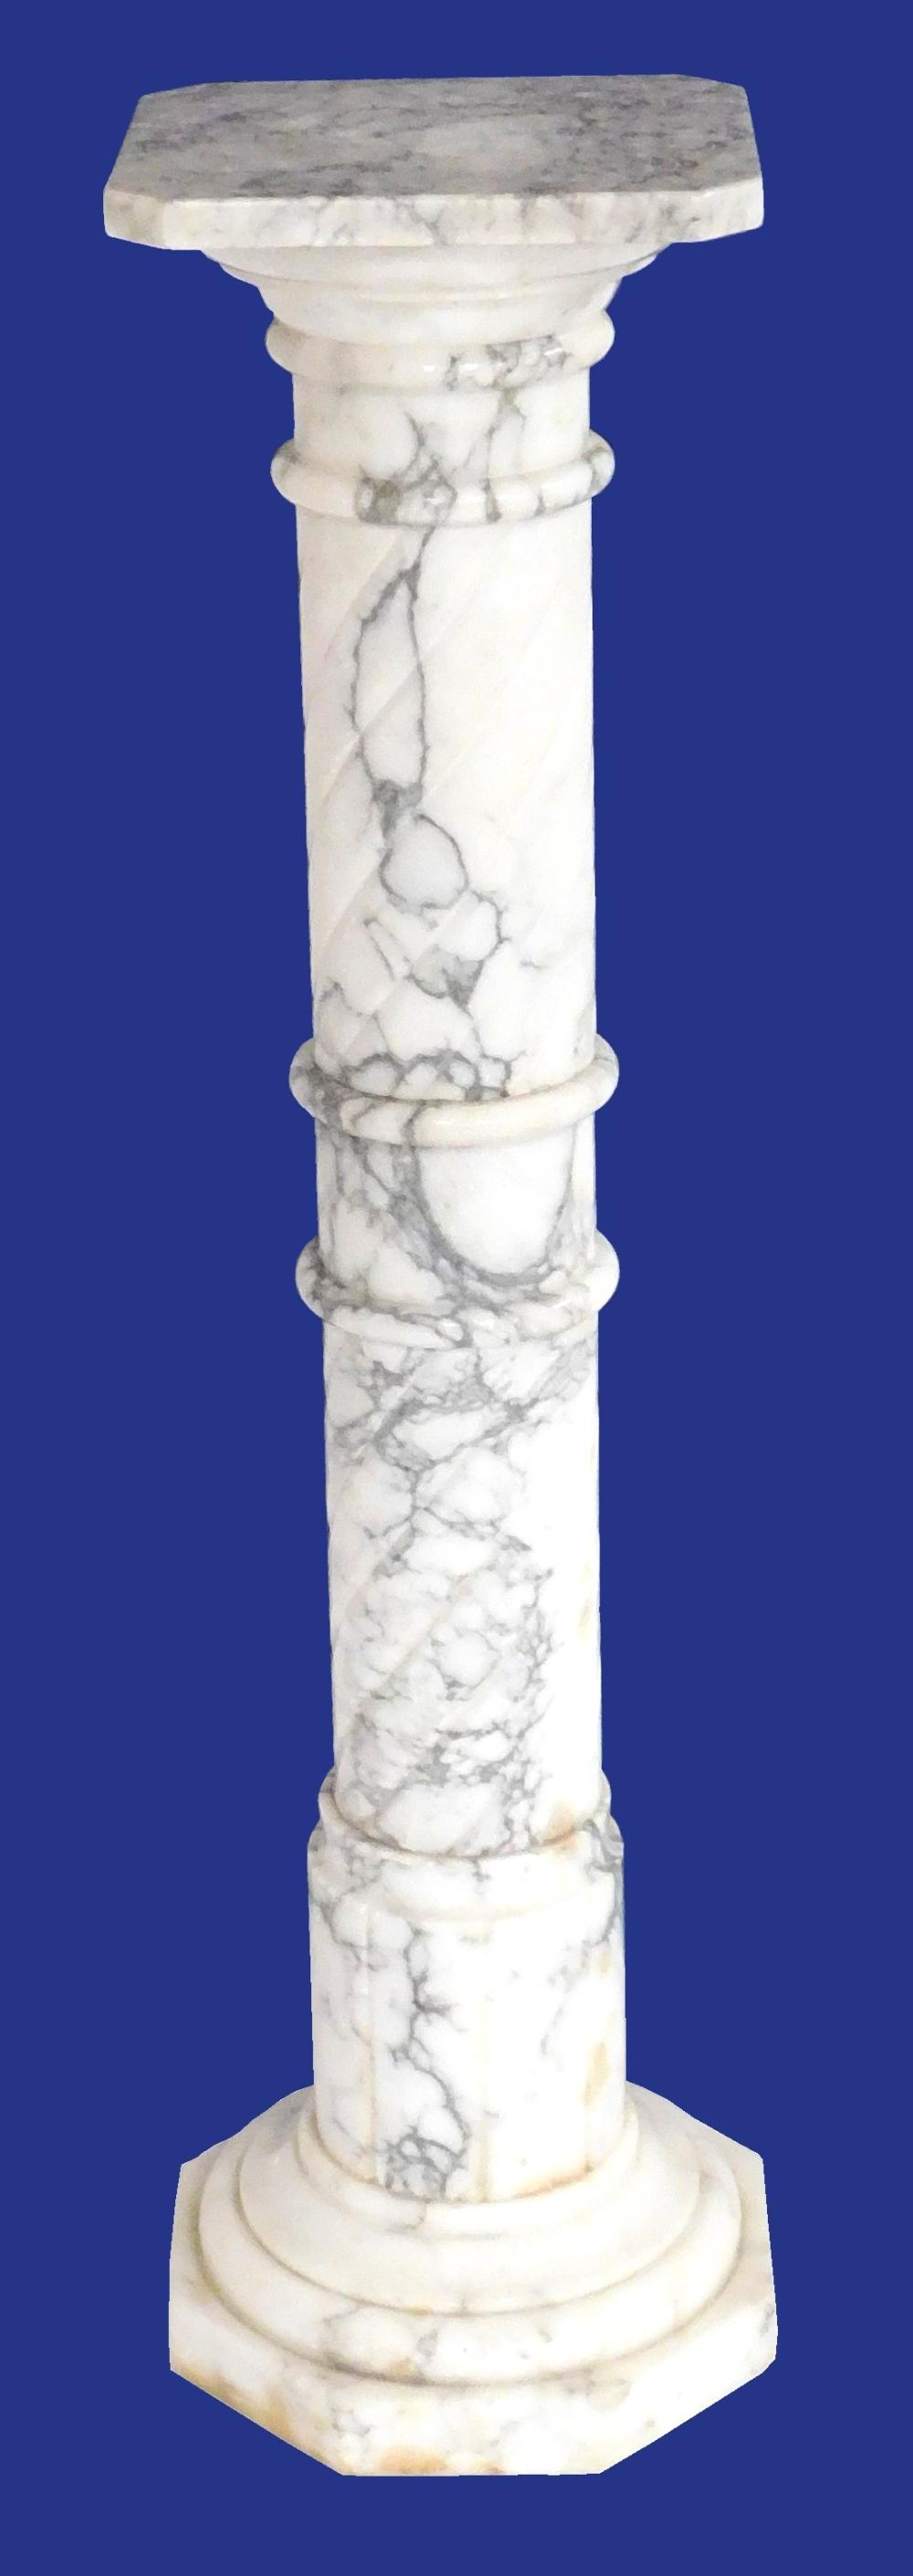 White and grey variegated marble pedestal in two pieces, square top with cut corners, column standard with rings and incised spiral...